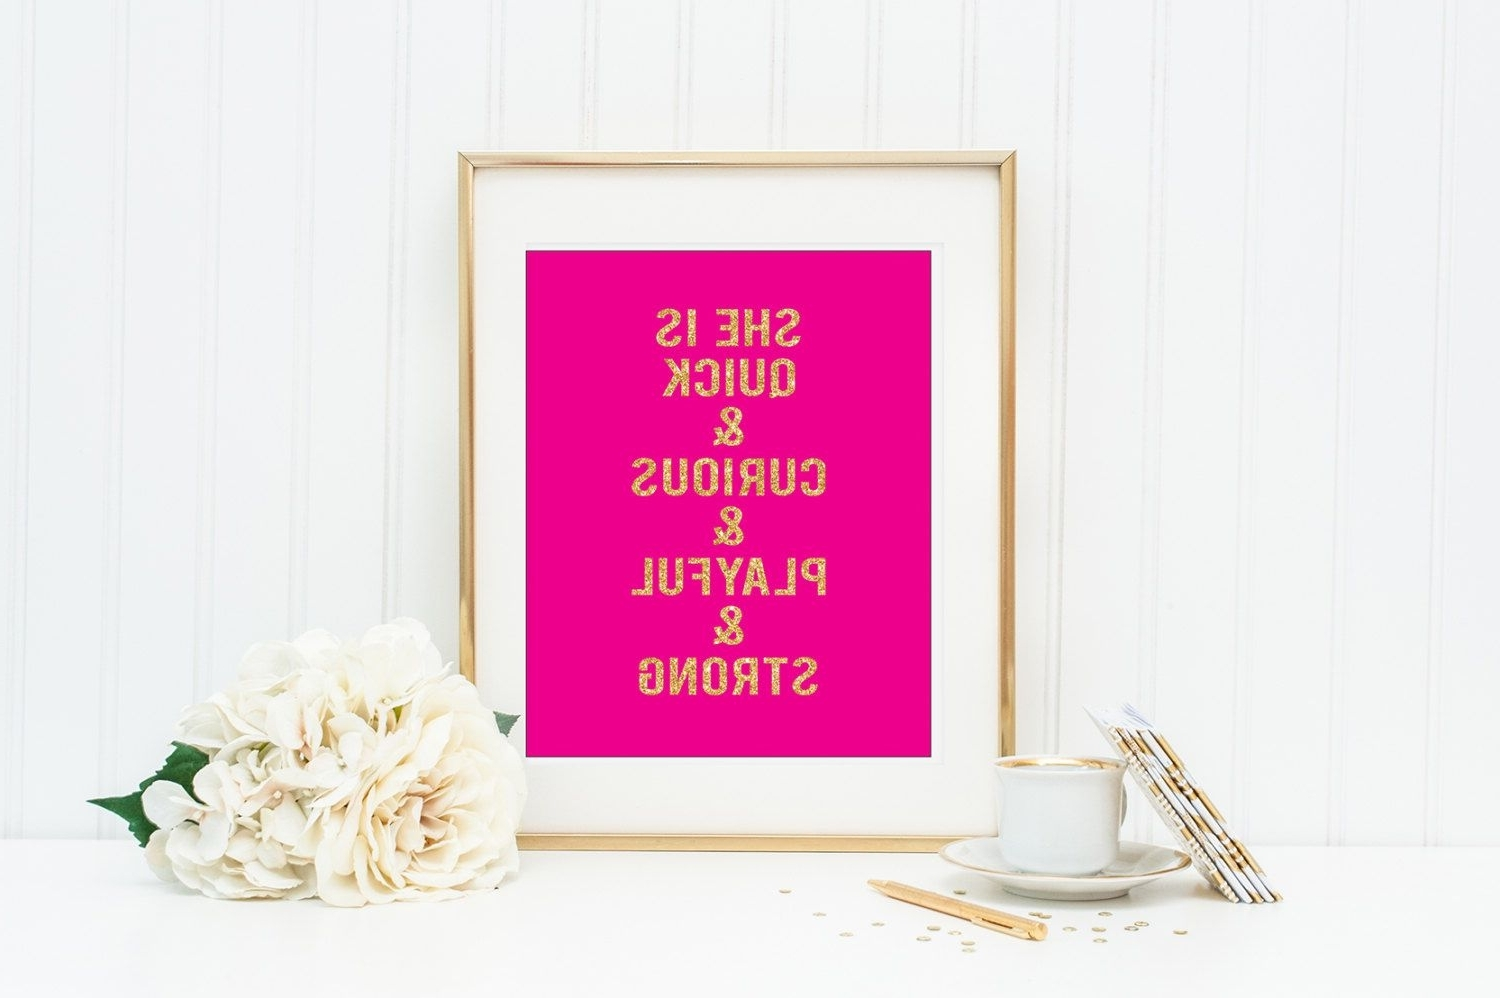 Well Known Kate Spade Wall Art Intended For She Is Quick And Curious Kate Spade Quote Pink And Gold Wall Art (View 15 of 15)